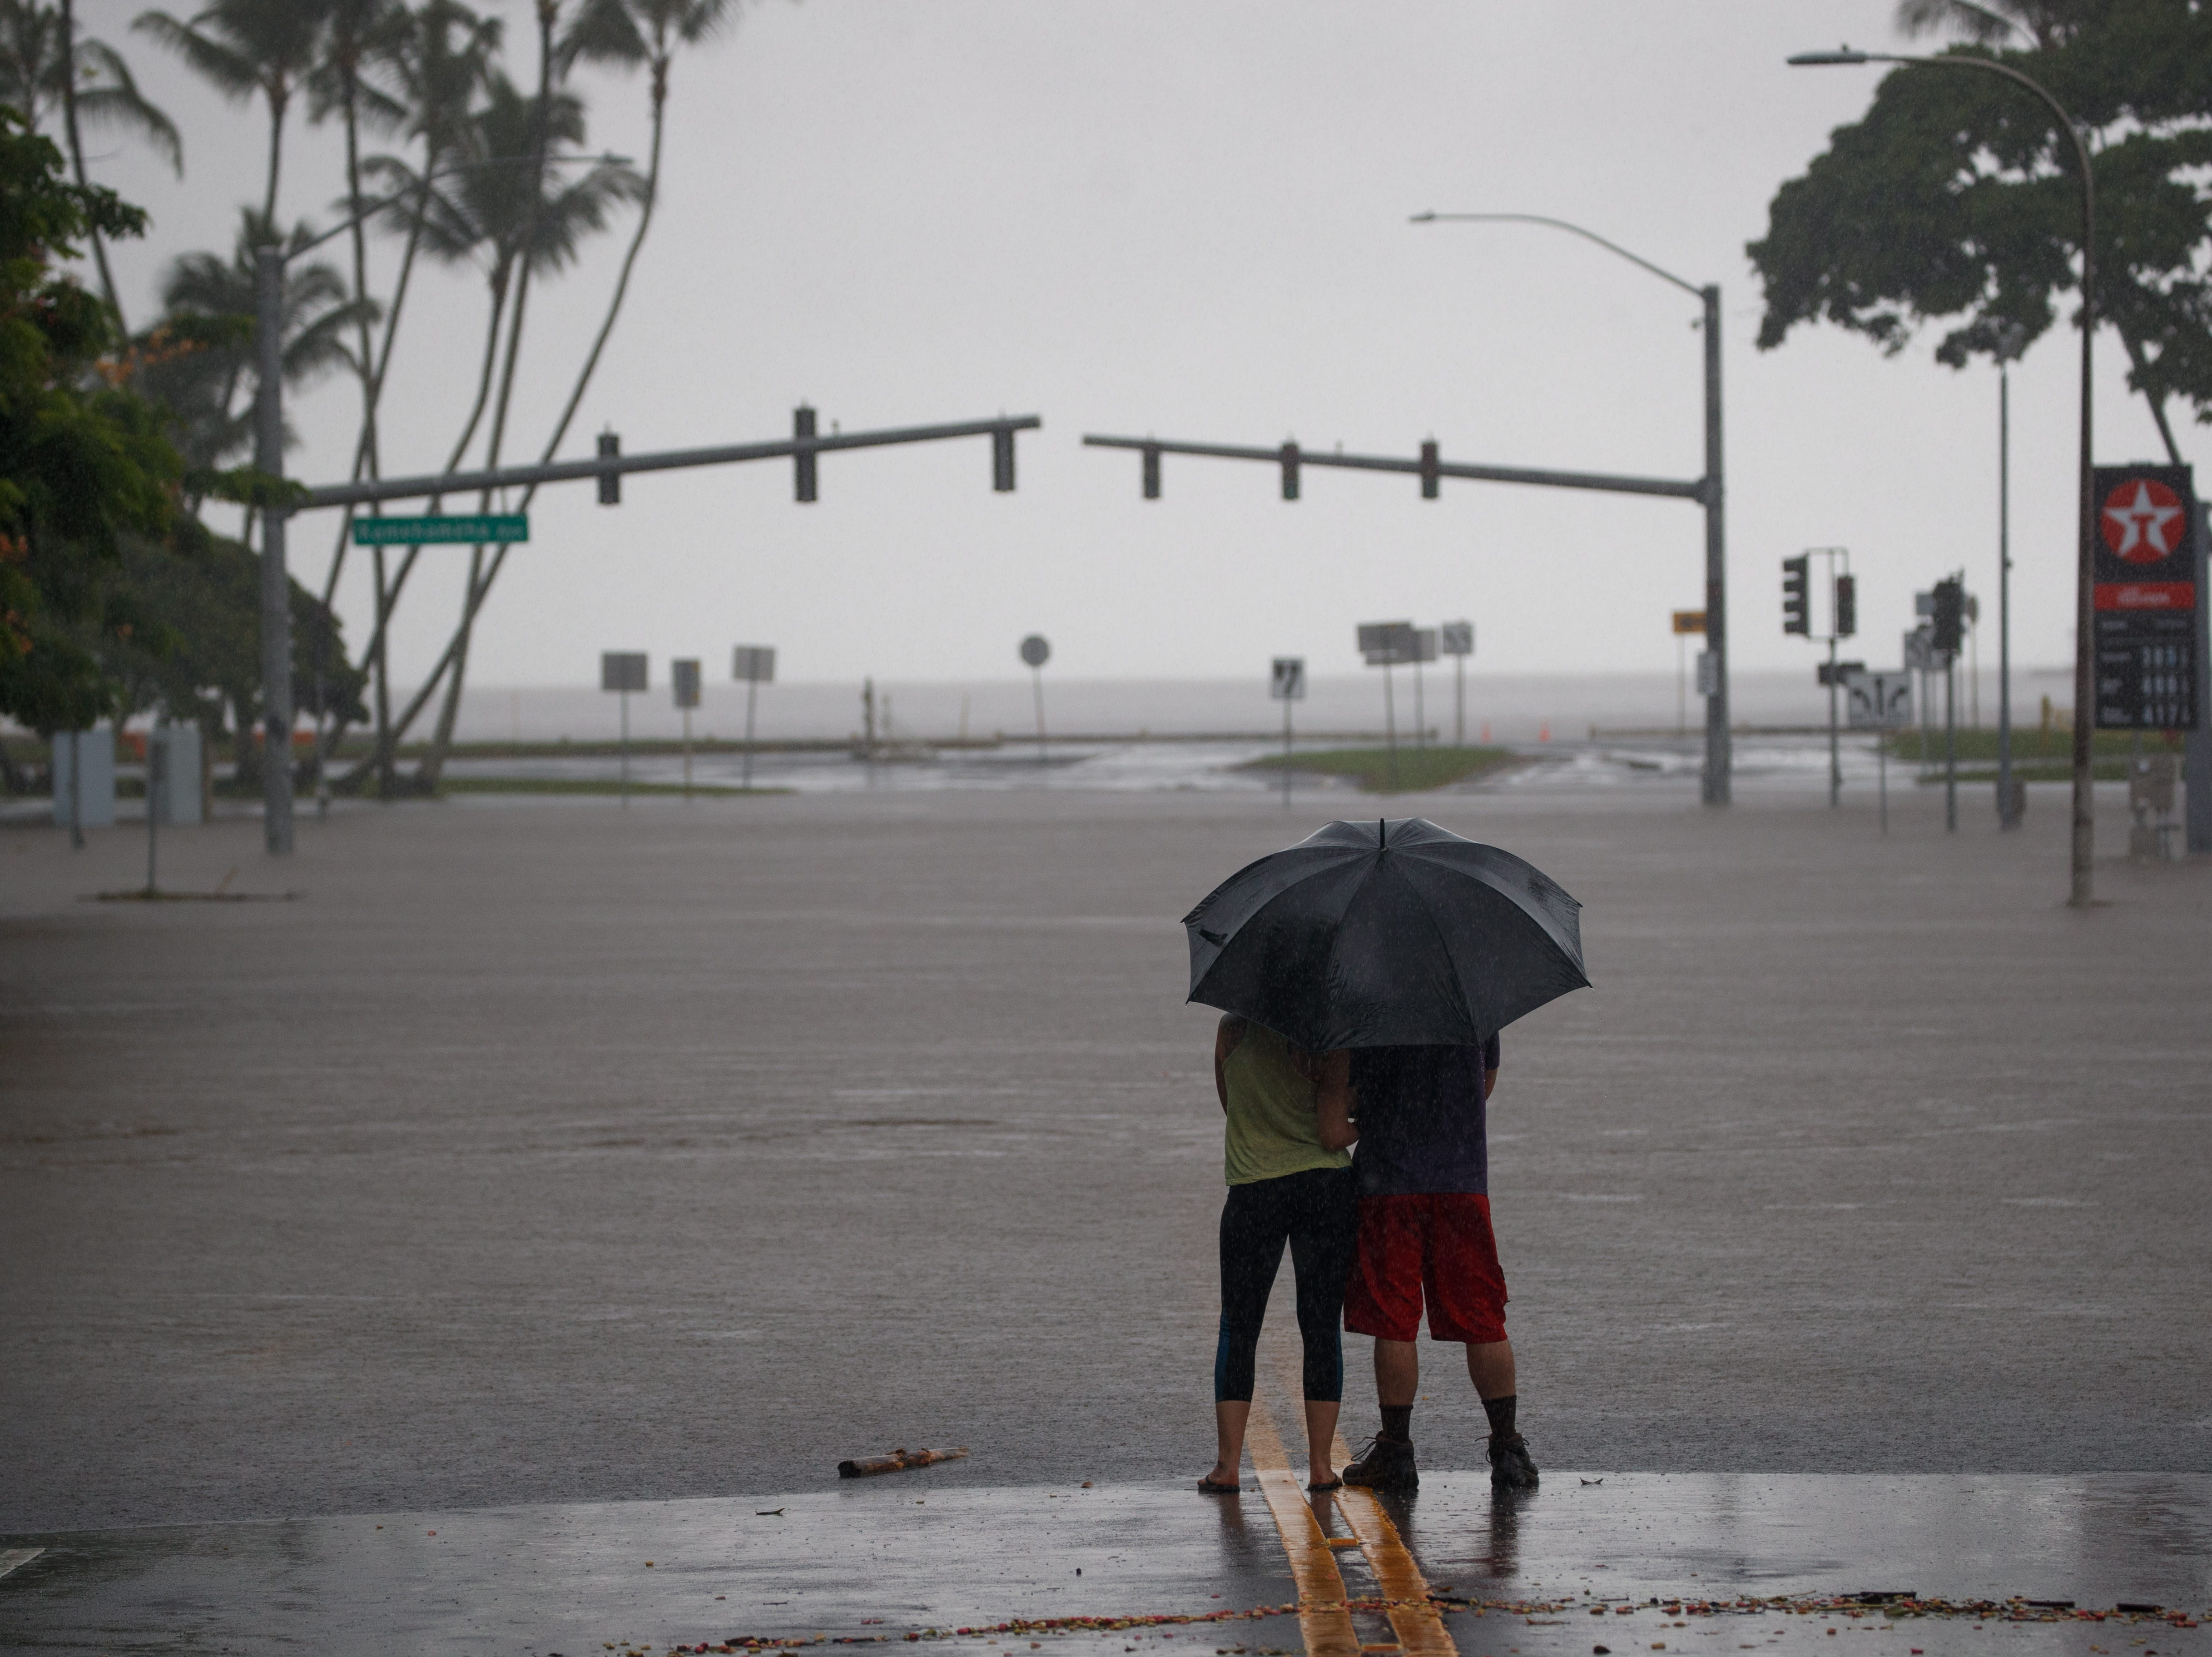 Aug. 24, 2018: Michelle Montgomery (L) and Eric Leifer (R) share a moment under an umbrella, as they view the flooded Pauahi St and Kamehameha Ave intersection in Hilo, Hawaii.  Torrential rains from Hurricane Lane inundated the eastern half of the island of Hawaii, causing disruptions for residents and visitors alike.